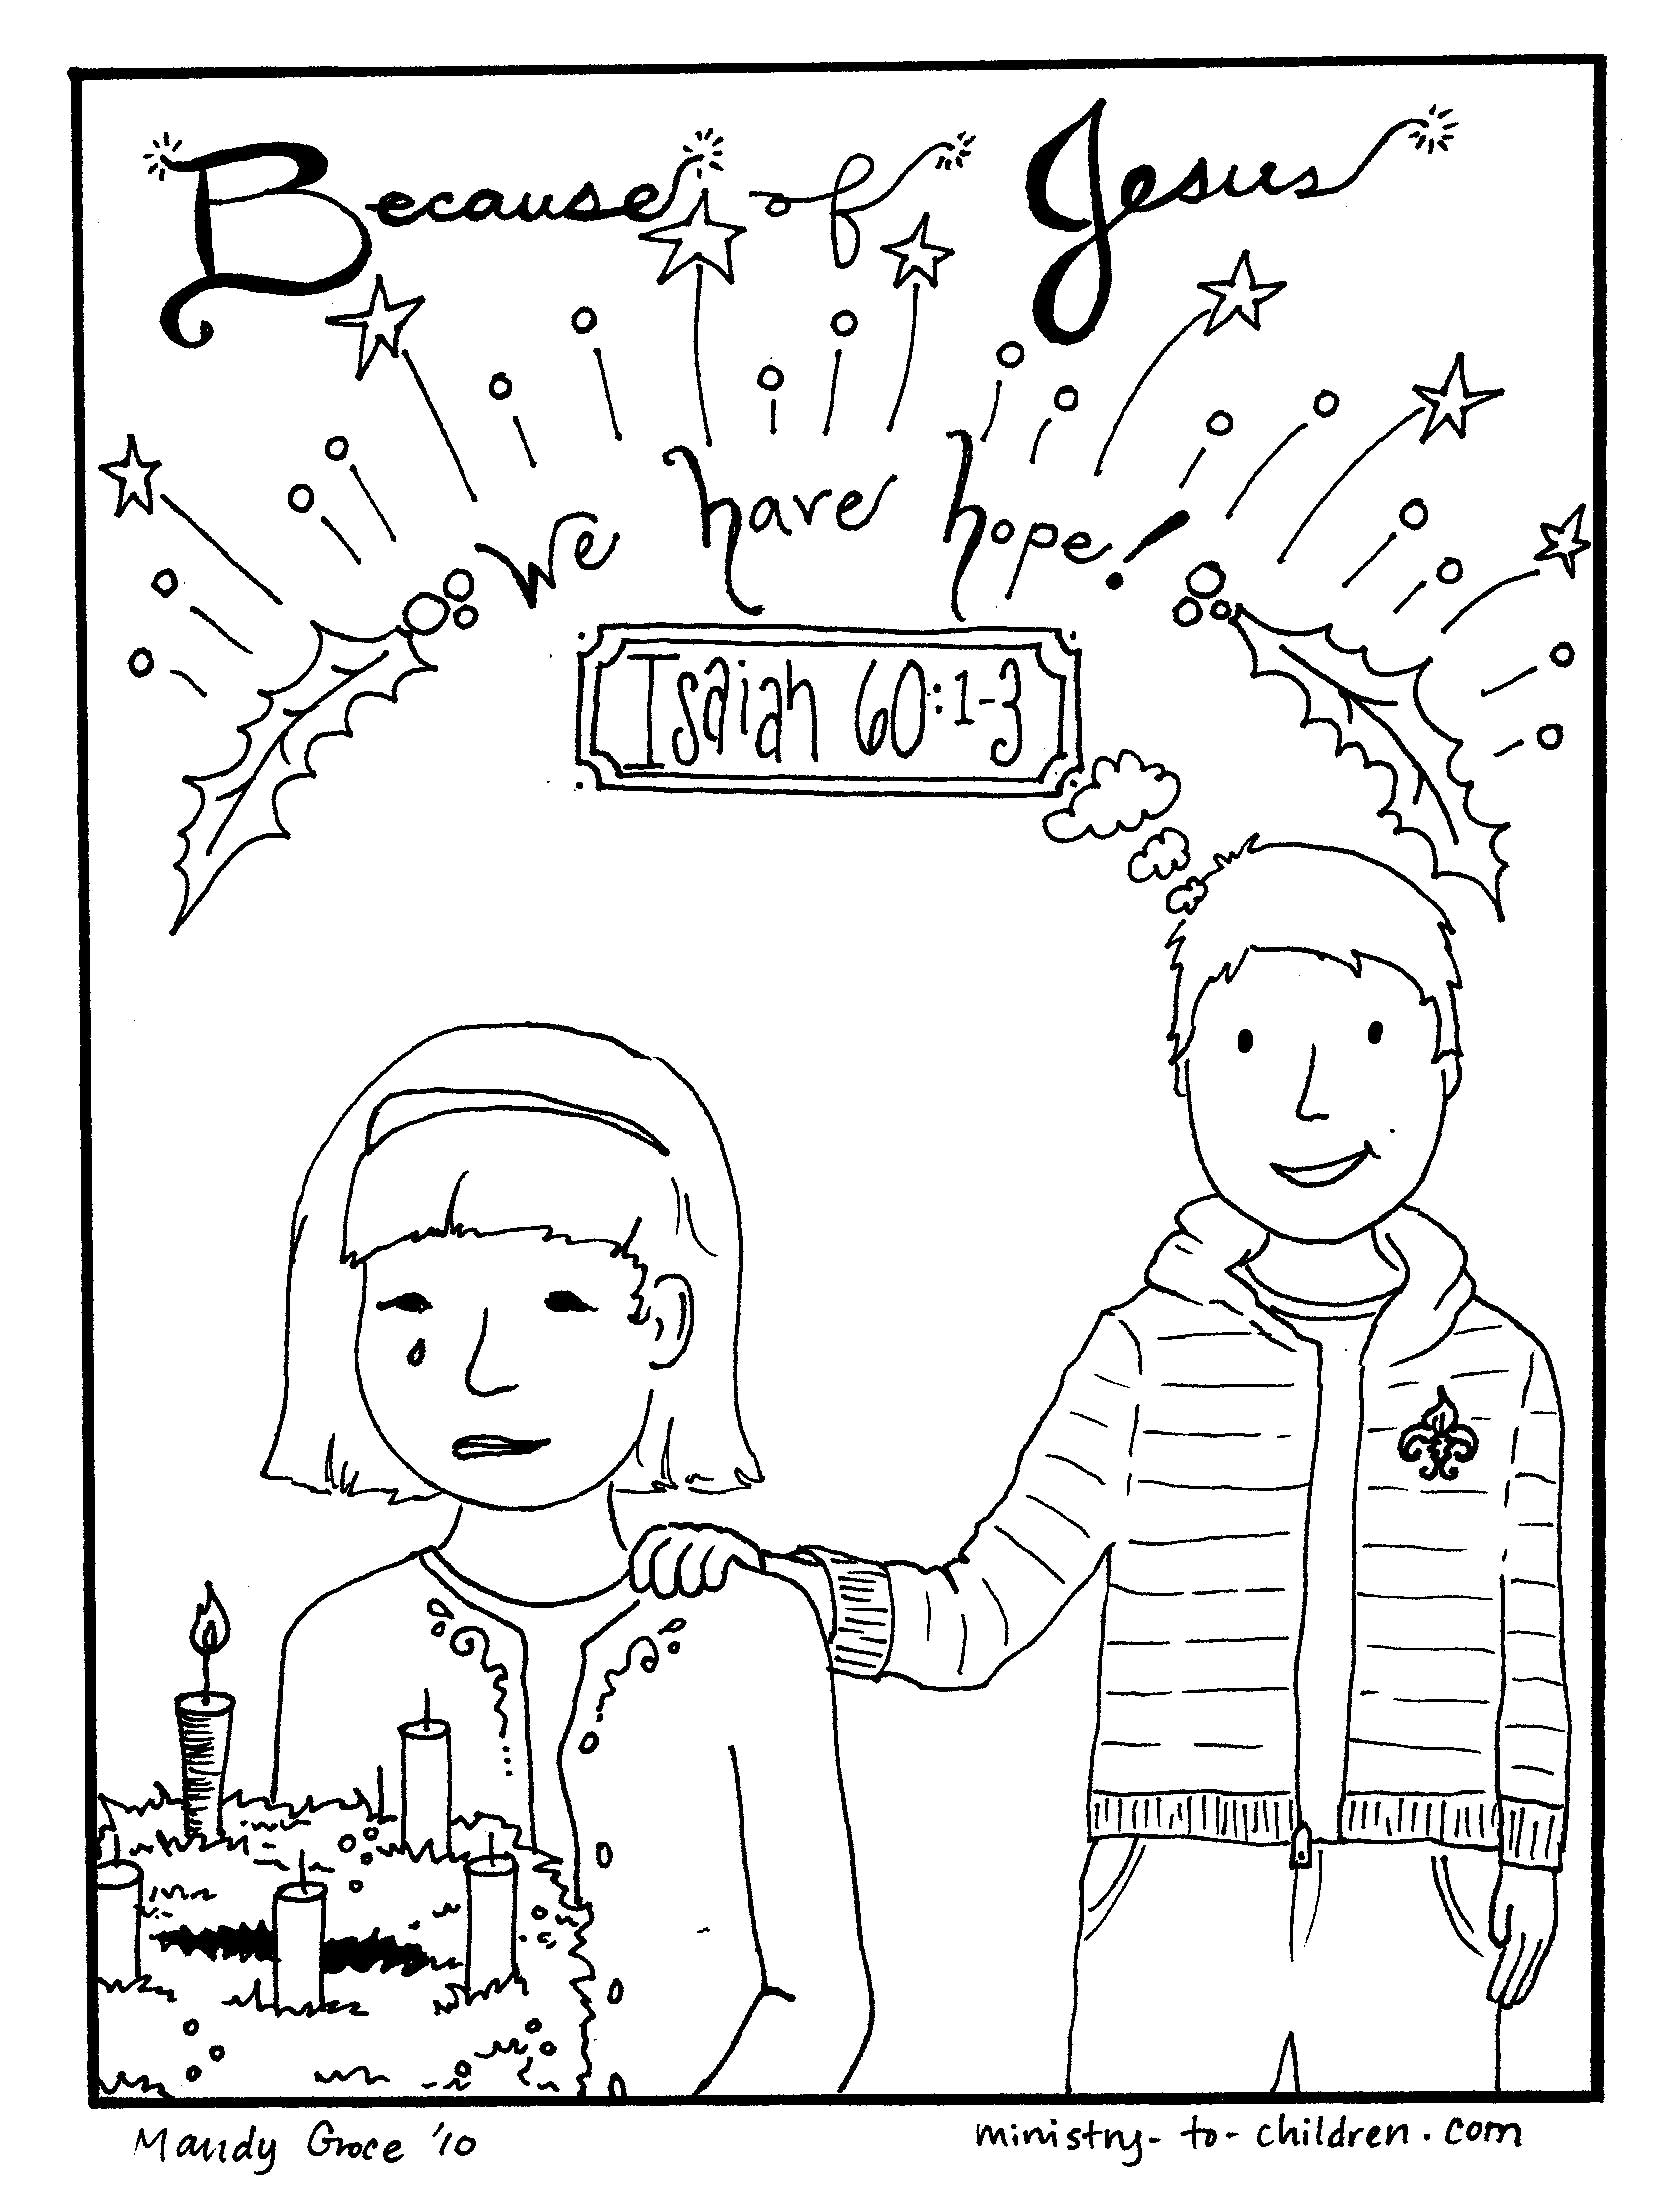 Advent Coloring Pages for Kids | Advent coloring, Advent calendars for kids,  Christmas printables kids | 2192x1656